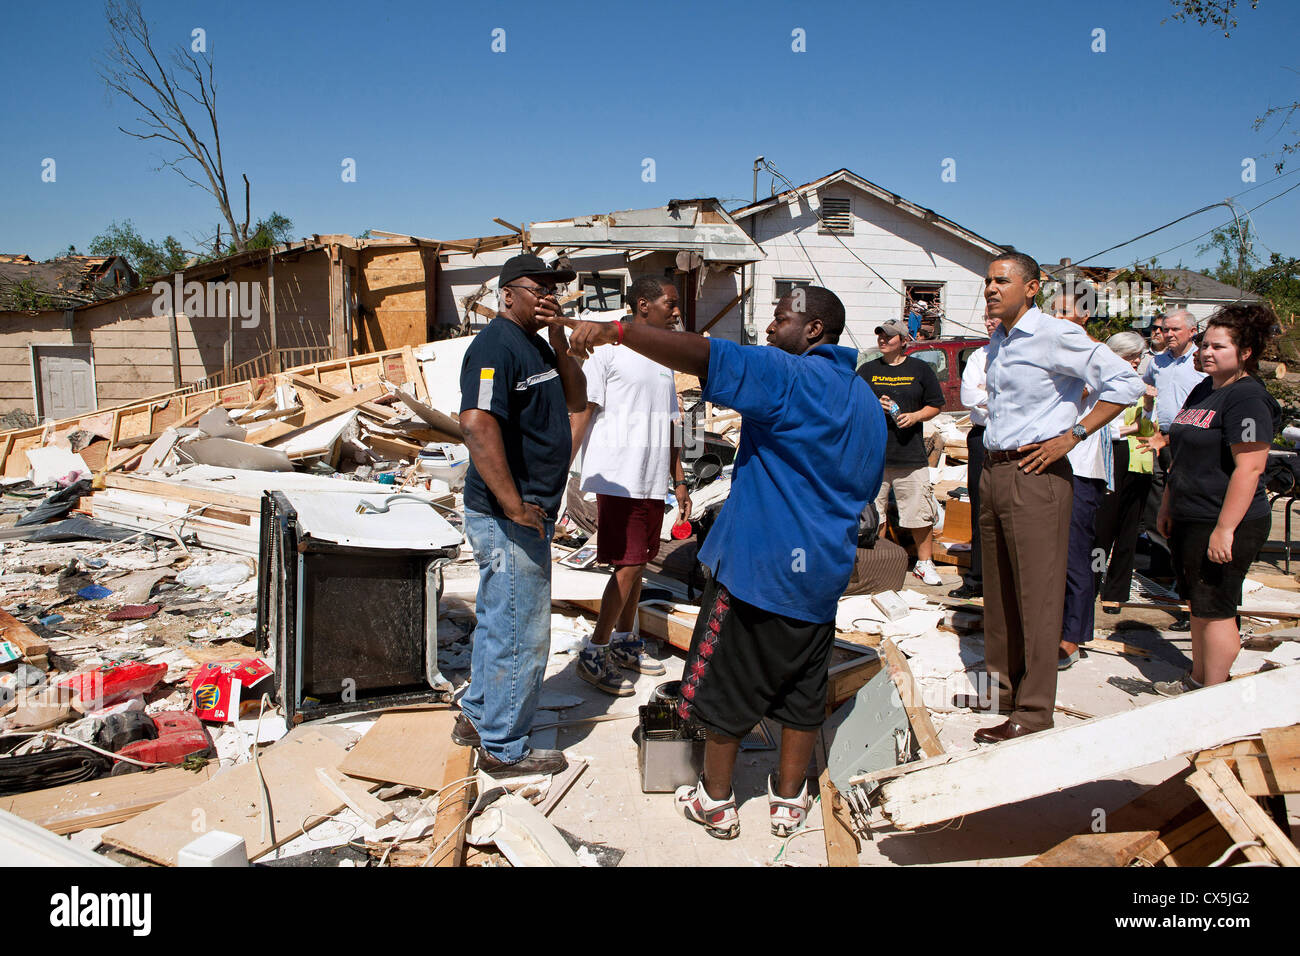 US President Barack Obama and First Lady Michelle Obama inspect tornado damage with residents of the Alberta neighborhood - Stock Image